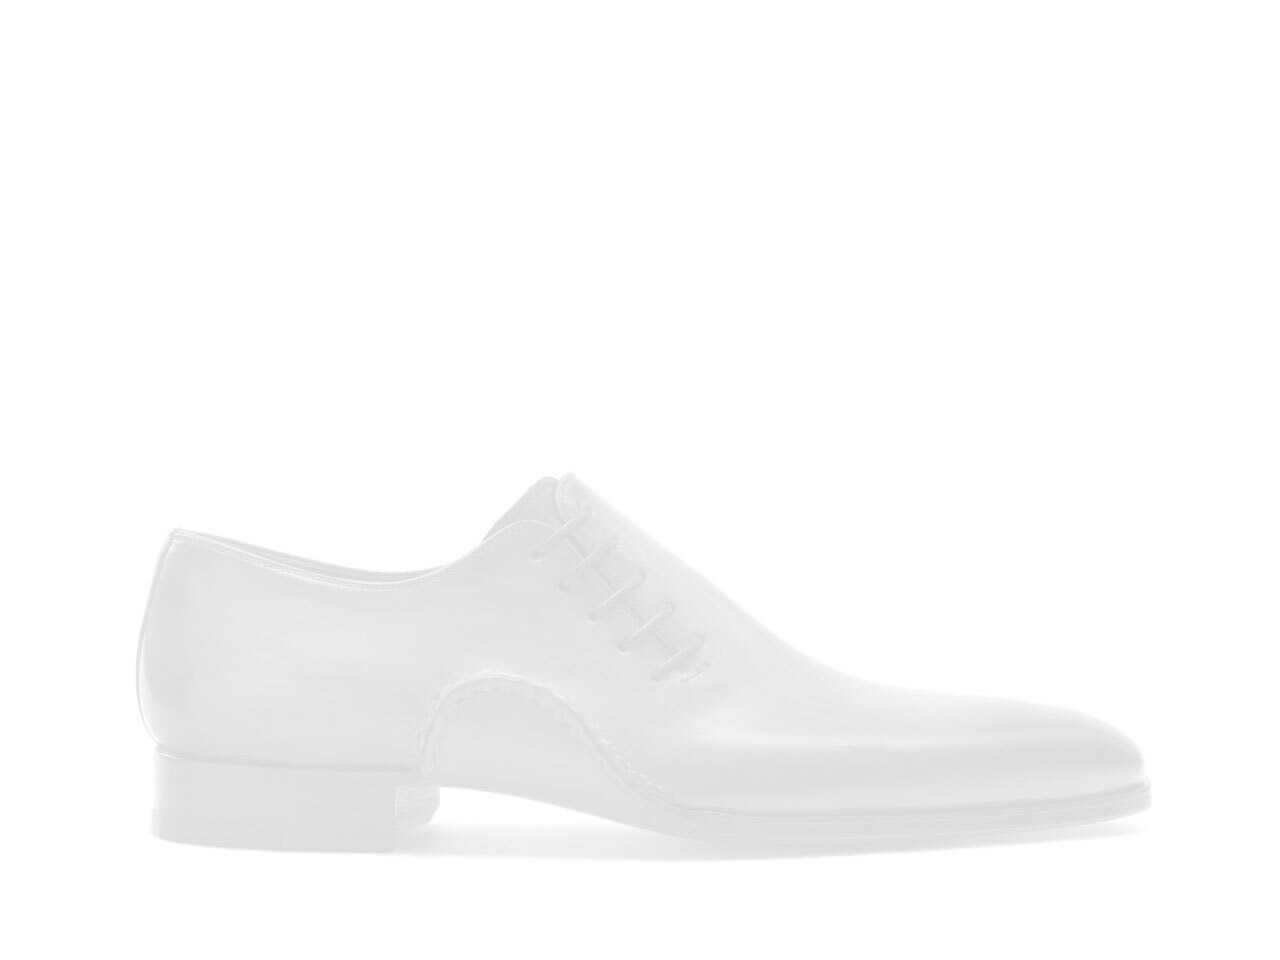 Sole of the Magnanni Elonso Lo White and Red Men's Sneakers